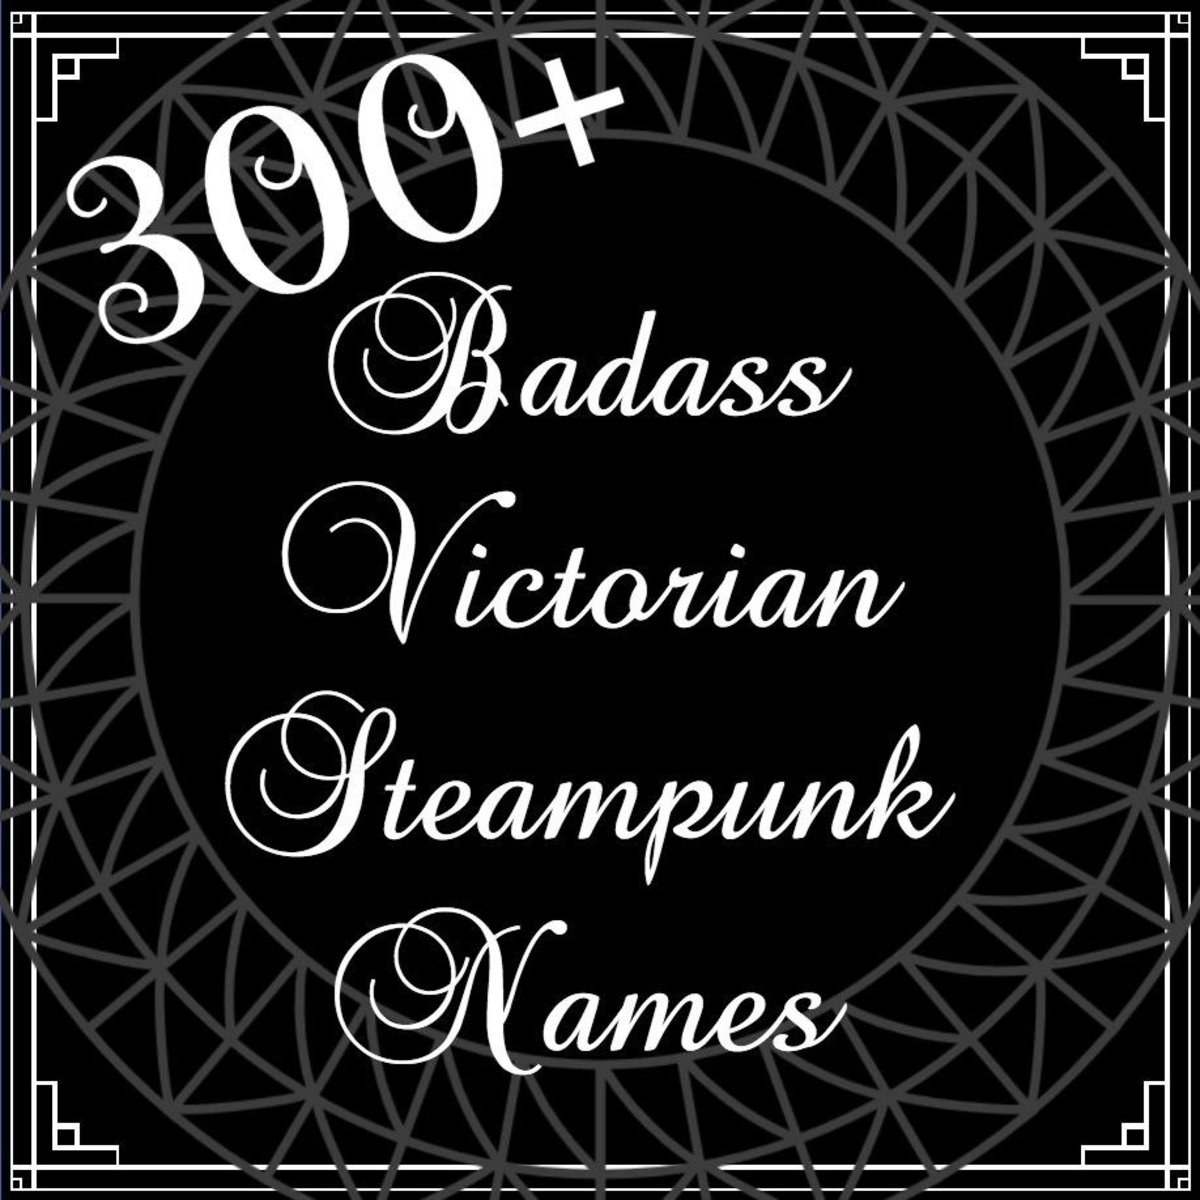 If you are looking for an awesome list of Victorian steampunk names, then this is the list you need.  There are over 300 to choose from.